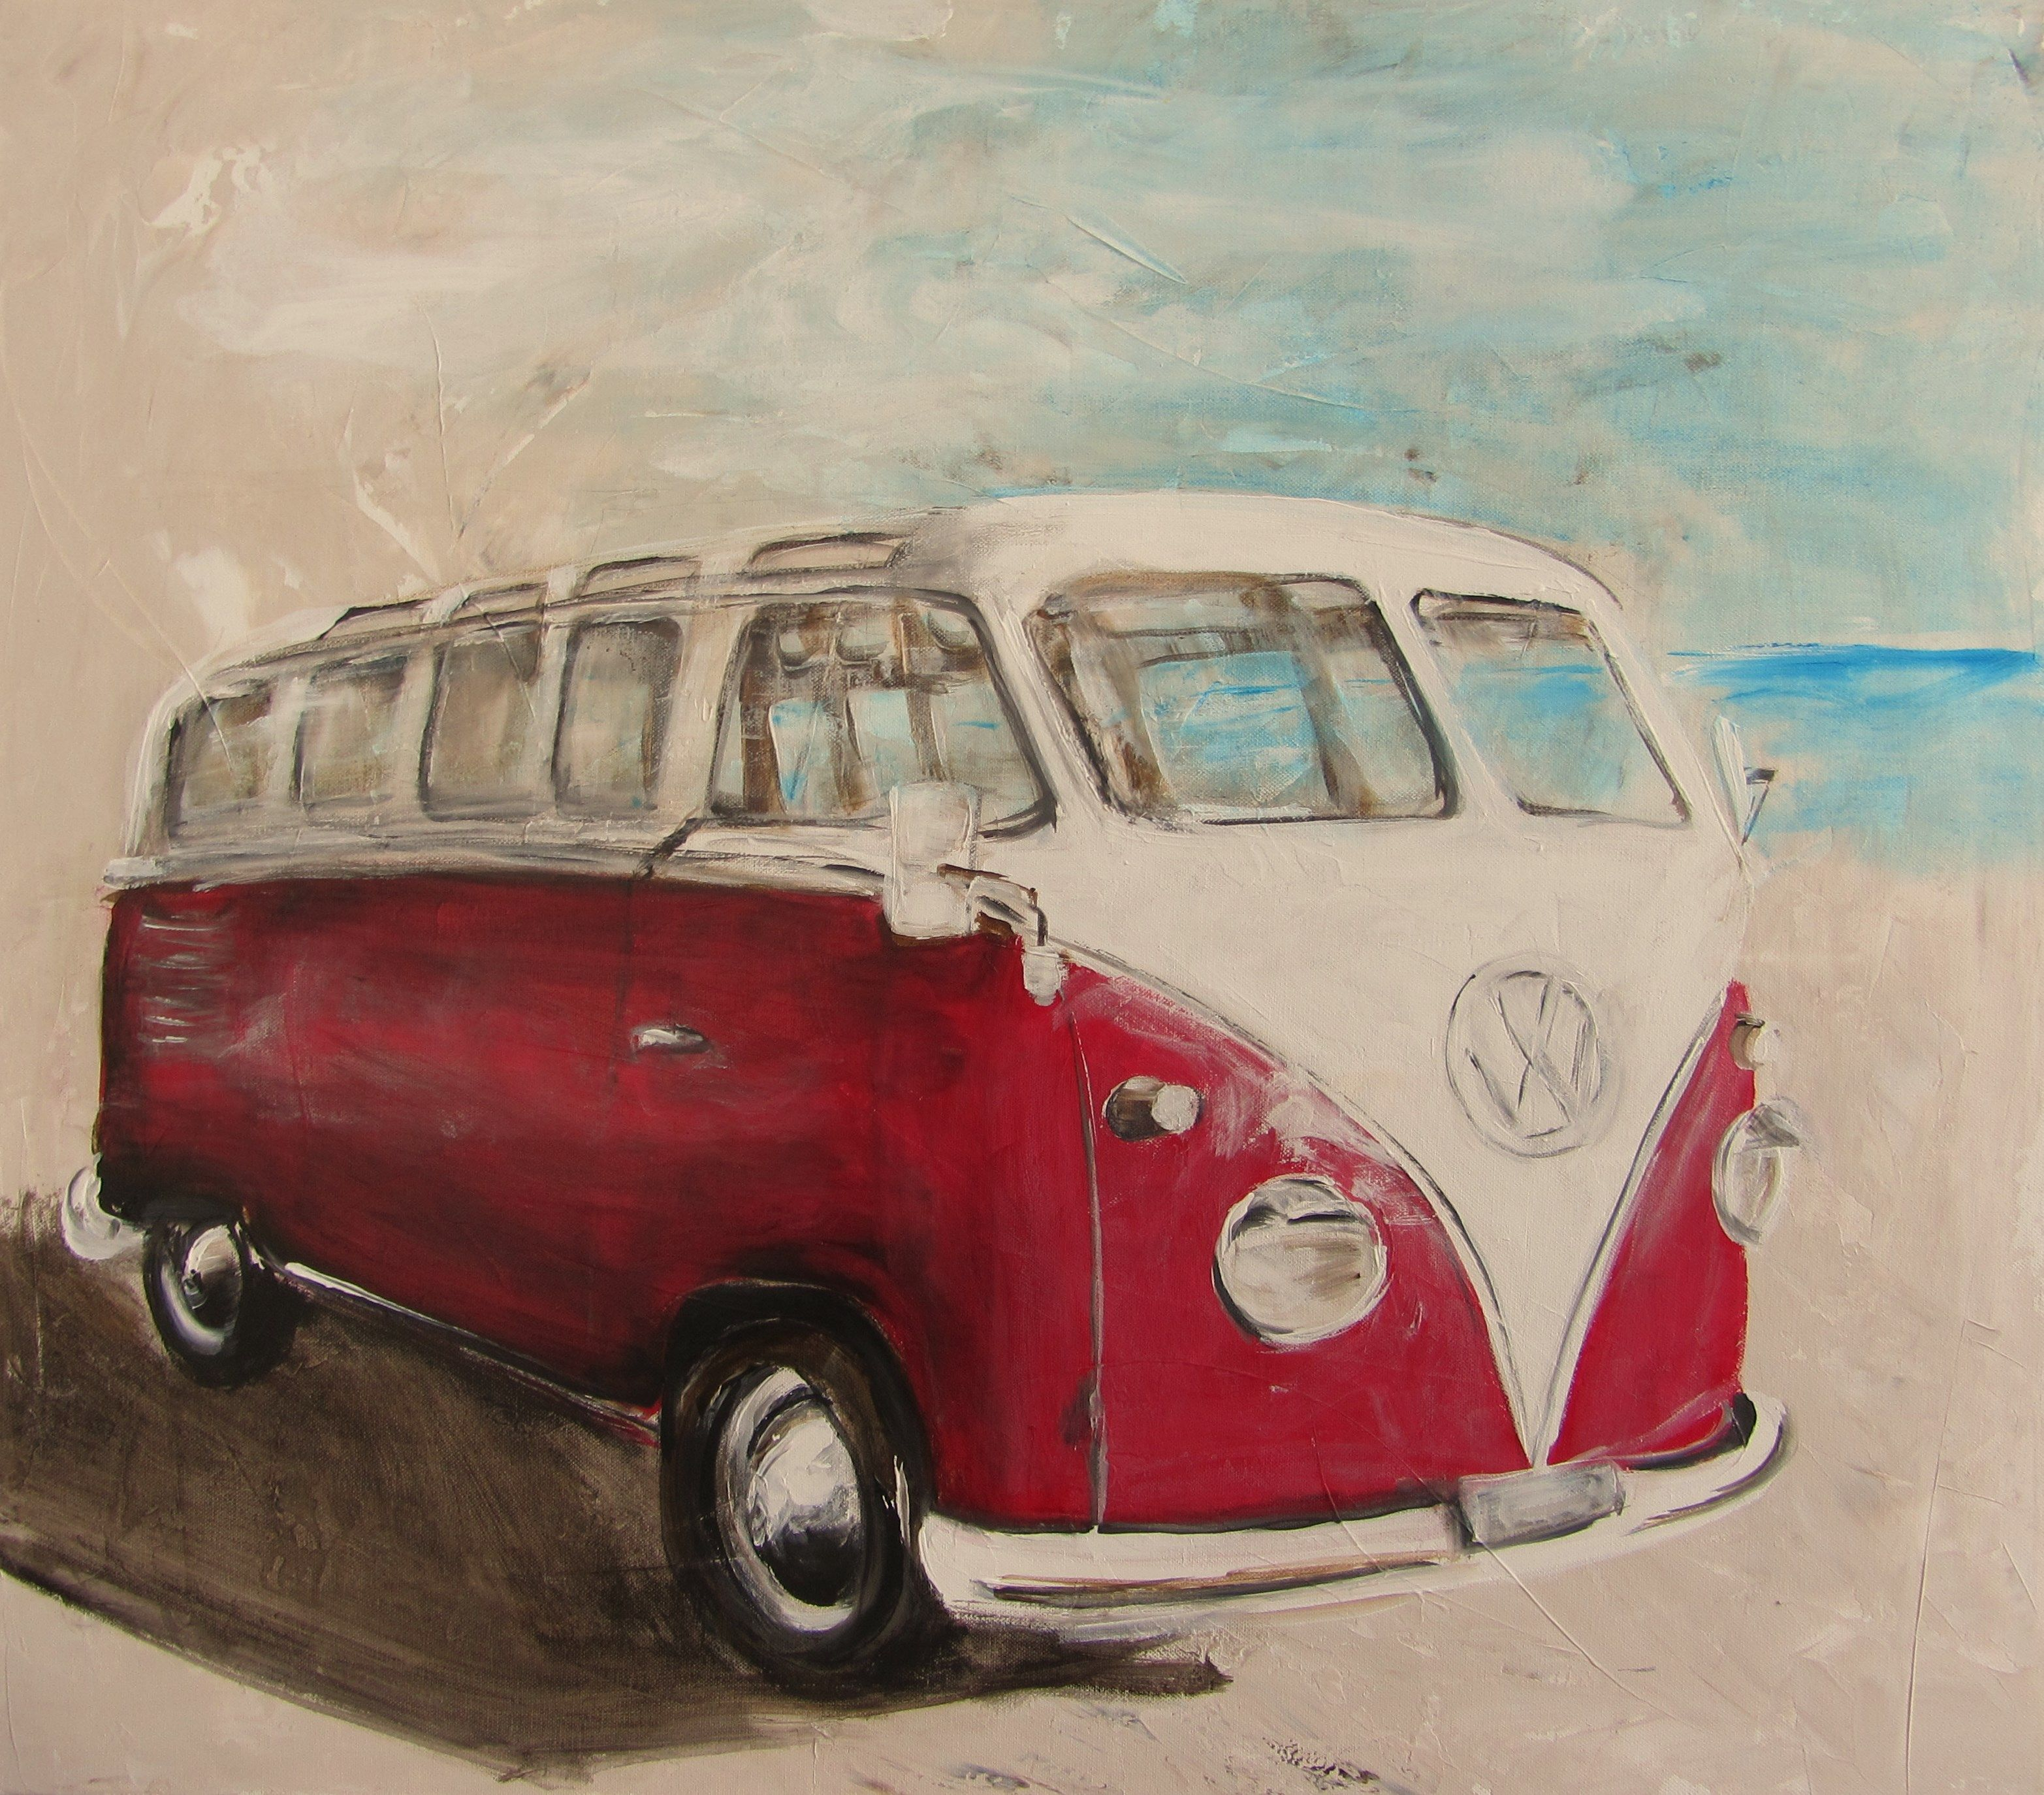 vw bulli t1 rot vw bus art kunst anja frackmann. Black Bedroom Furniture Sets. Home Design Ideas